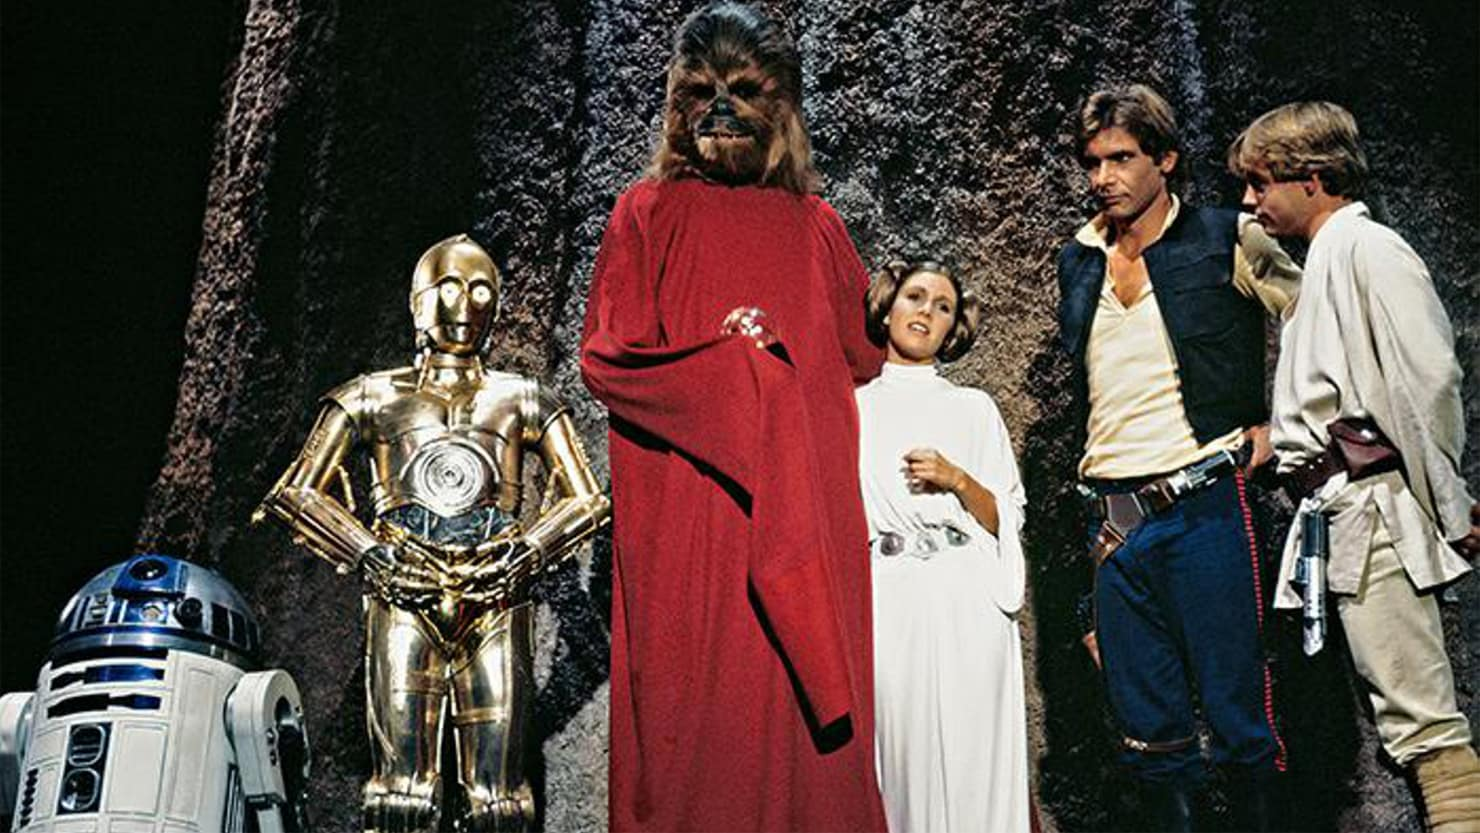 R2D2, C3P0 (Anthony Daniels), Chewbacca (Peter Mayhew), Princess Leia (Carrie Fisher), Han Solo (Harrison Ford) and Luke Skywalker (Mark Hamill) return home for Life Day in The Star Wars Holiday Special (1978)